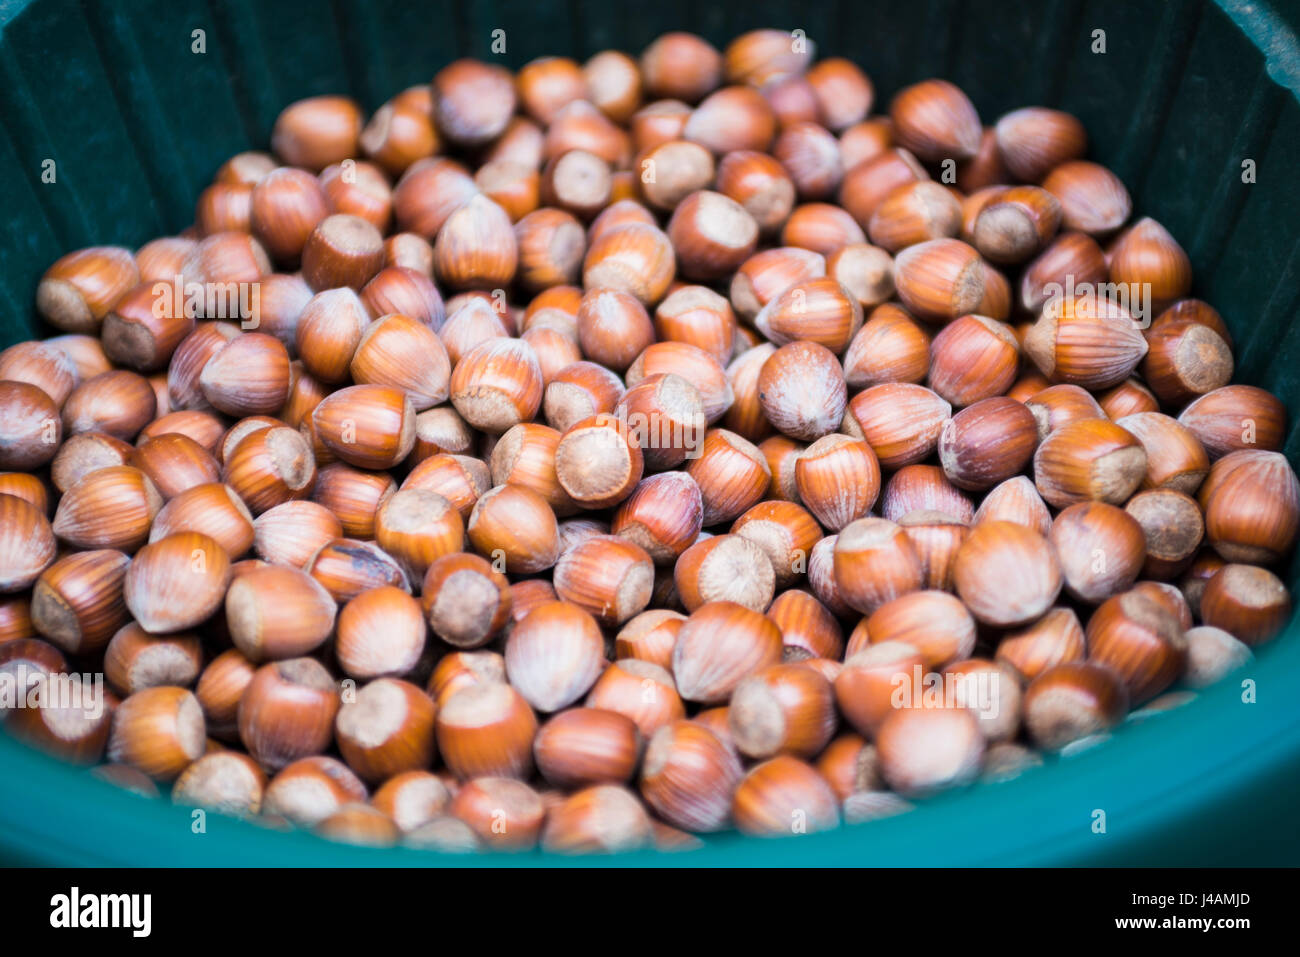 Sale of Hazelnut in bulk - Stock Image